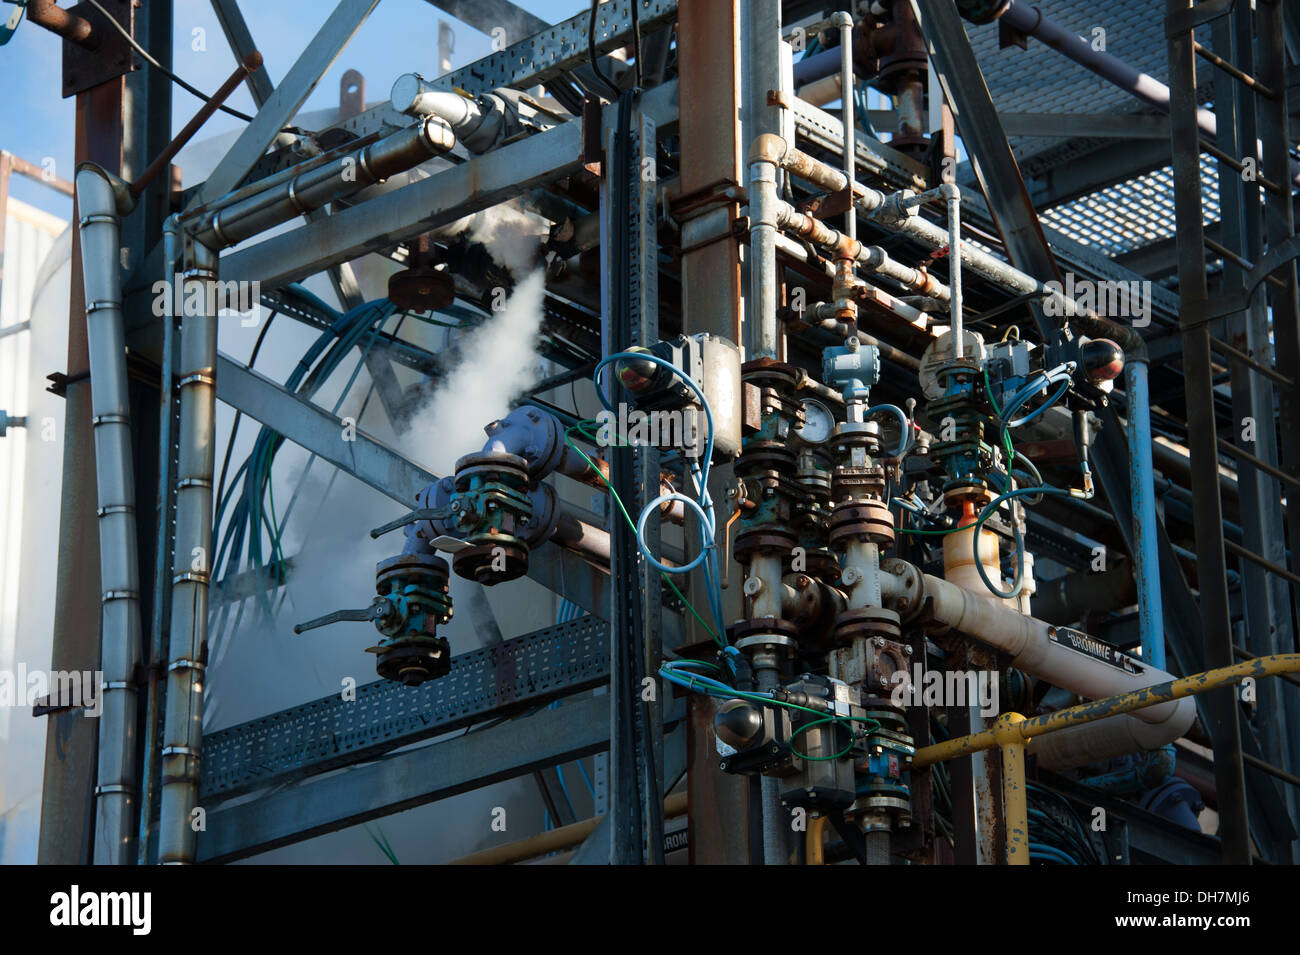 Steam escaping chemical plant pipework pipes - Stock Image